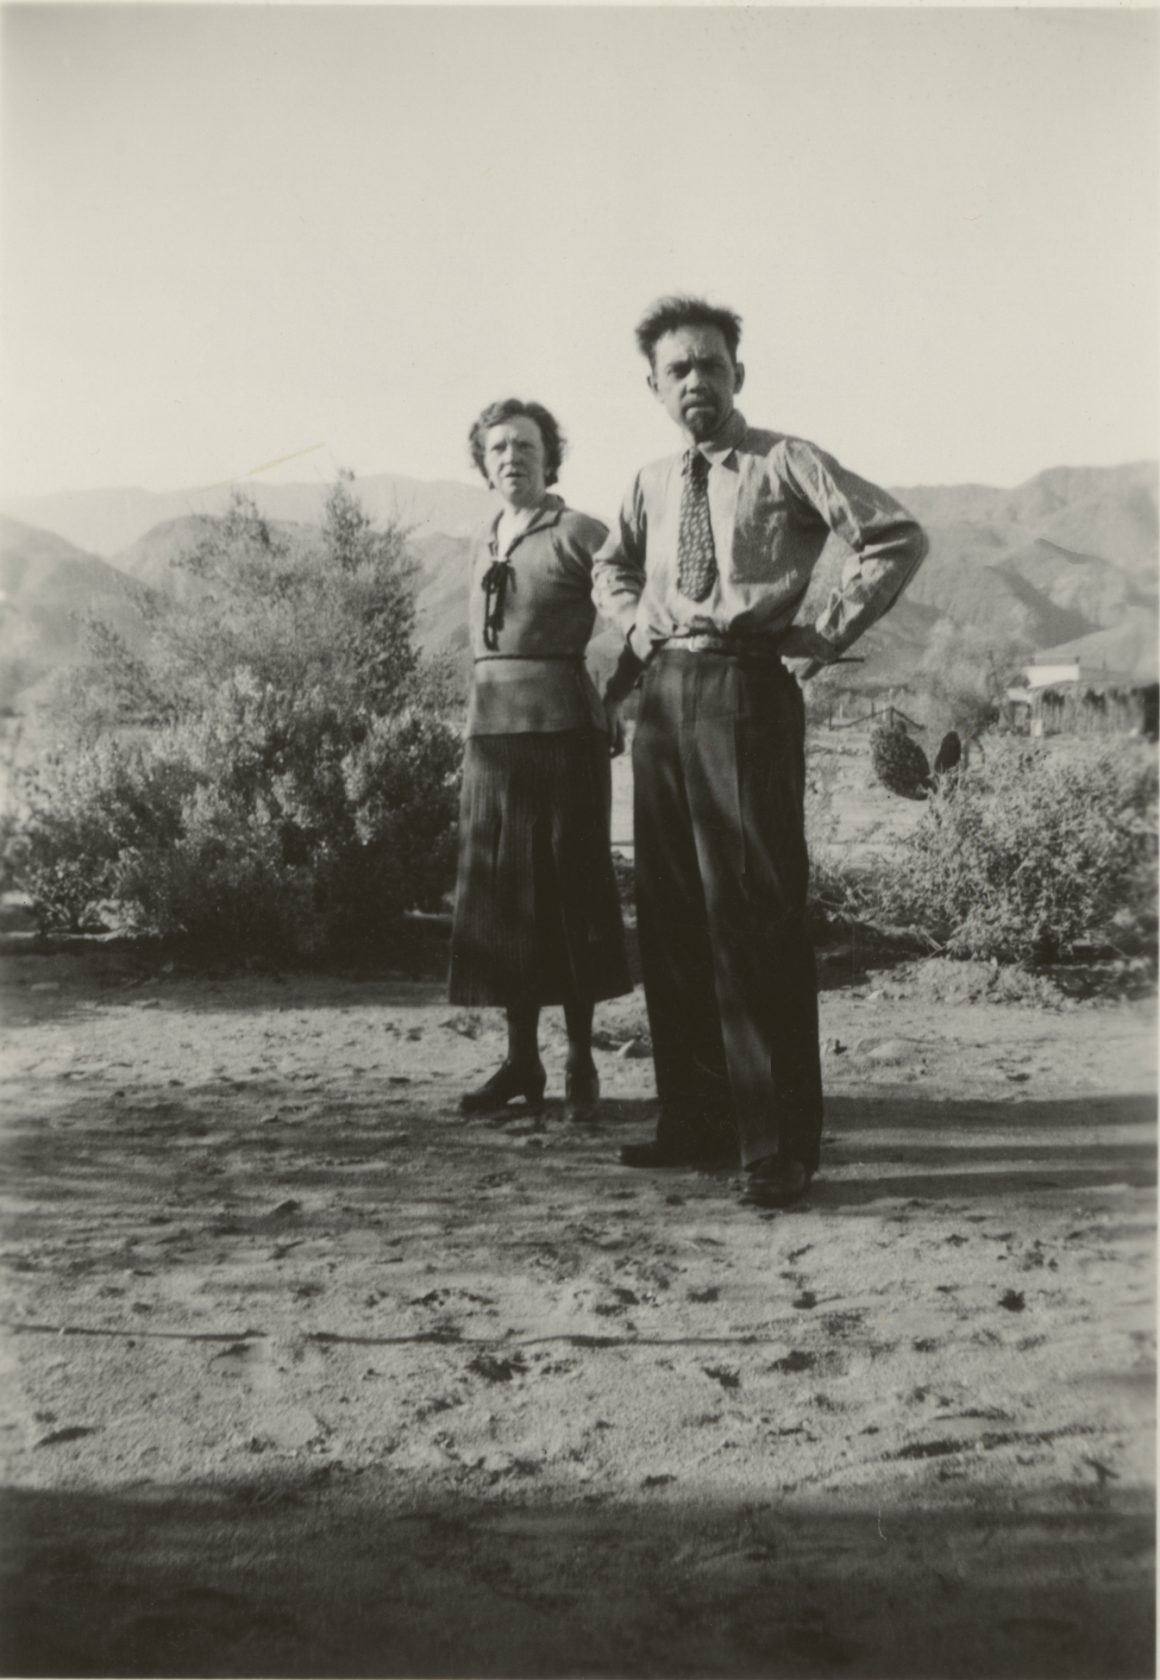 Cathedral City, Christmas, 1935